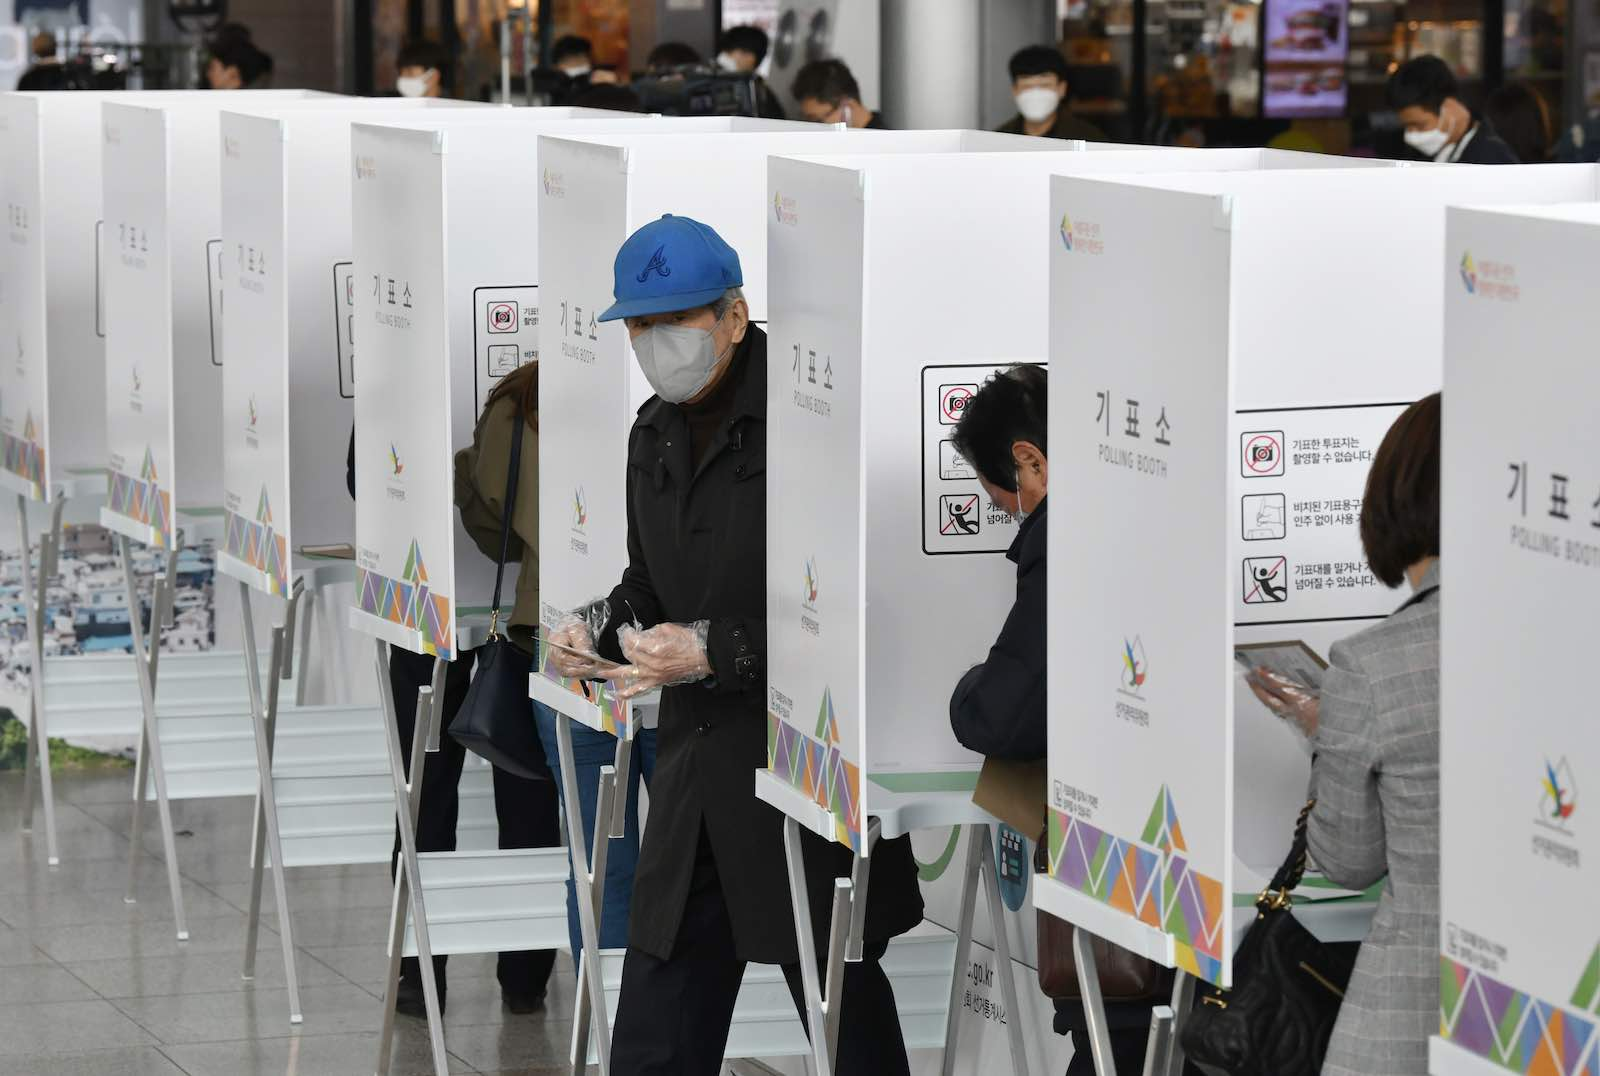 Early voting at a polling station in Seoul on 10 April ahead of next week's parliamentary elections (Jung Yeon-je/AFP/Getty Images)